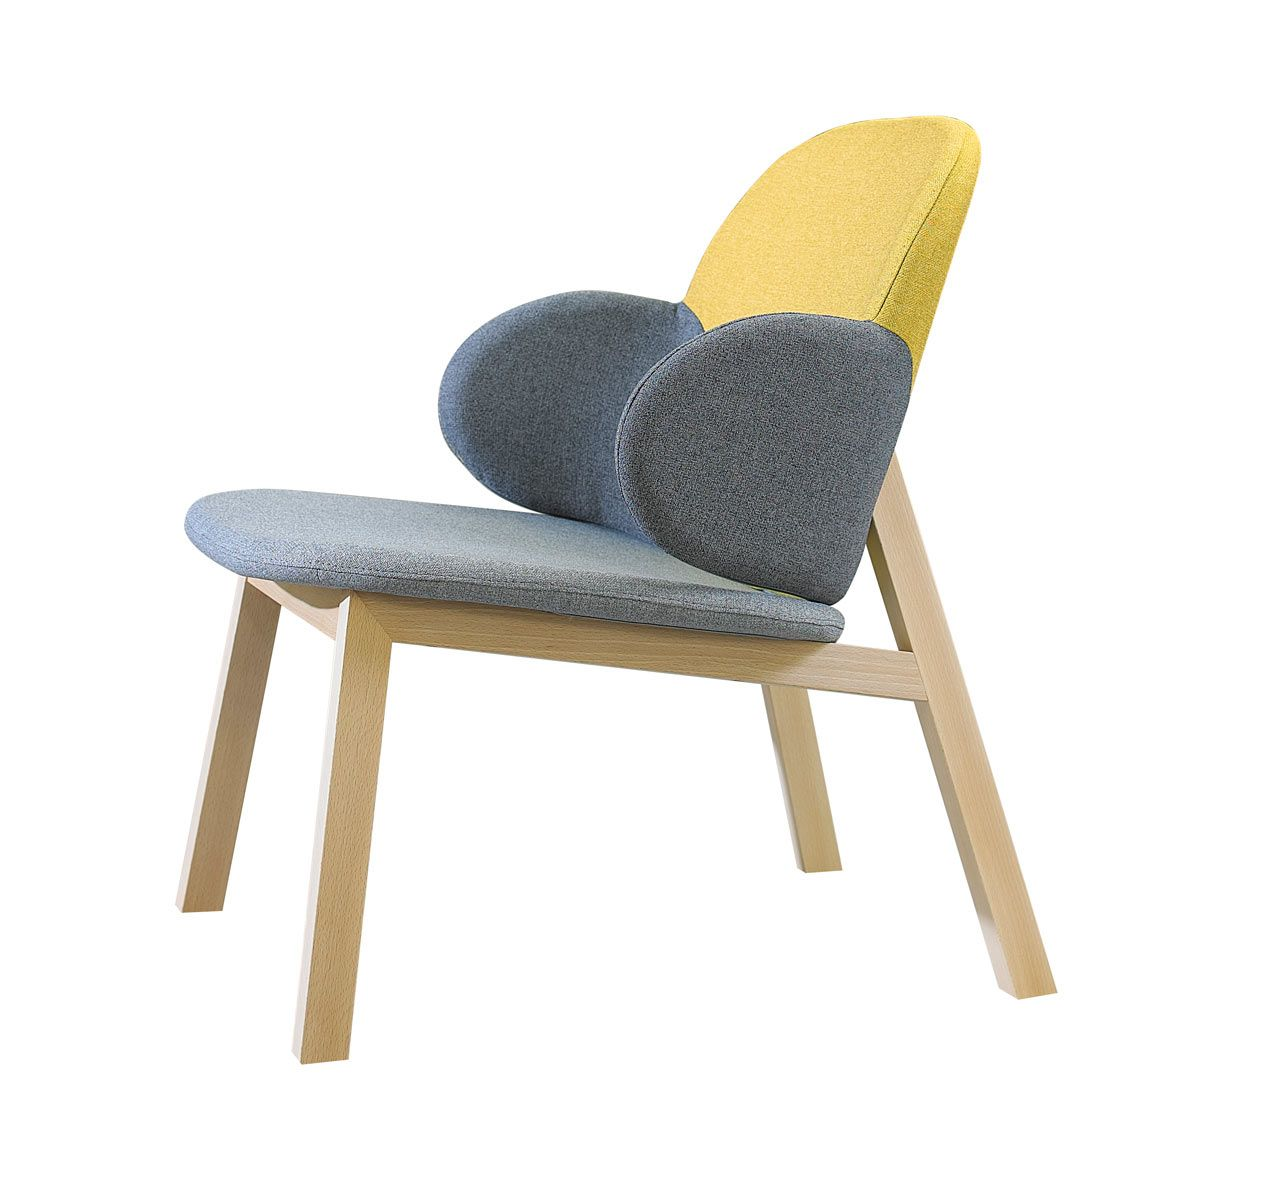 A Chair You Can Be Happy About Sitting In Furniture Design Chair Chair Design Furniture Chair